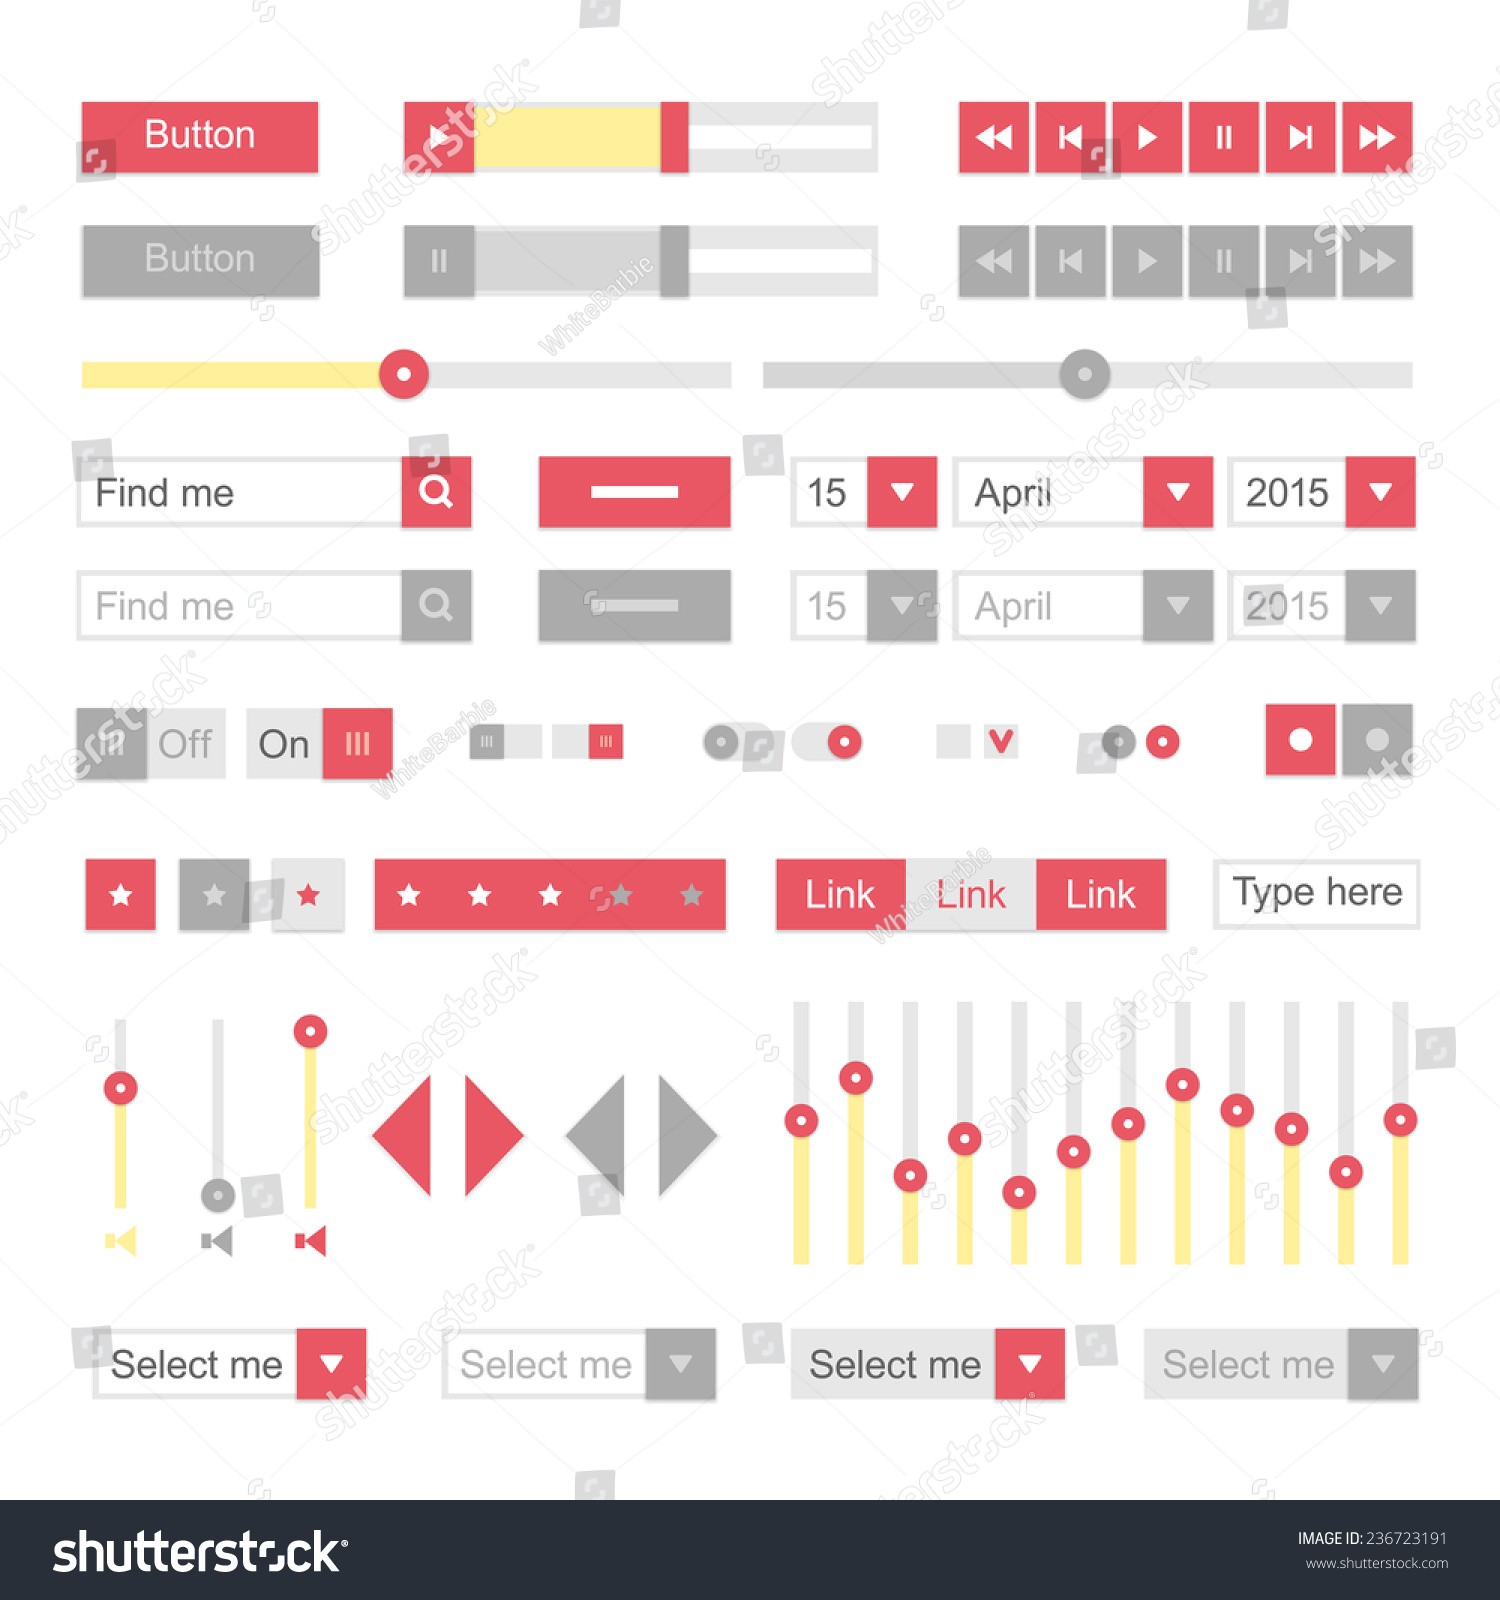 Red Material Design Ui Elements Vector Stock Vector (Royalty